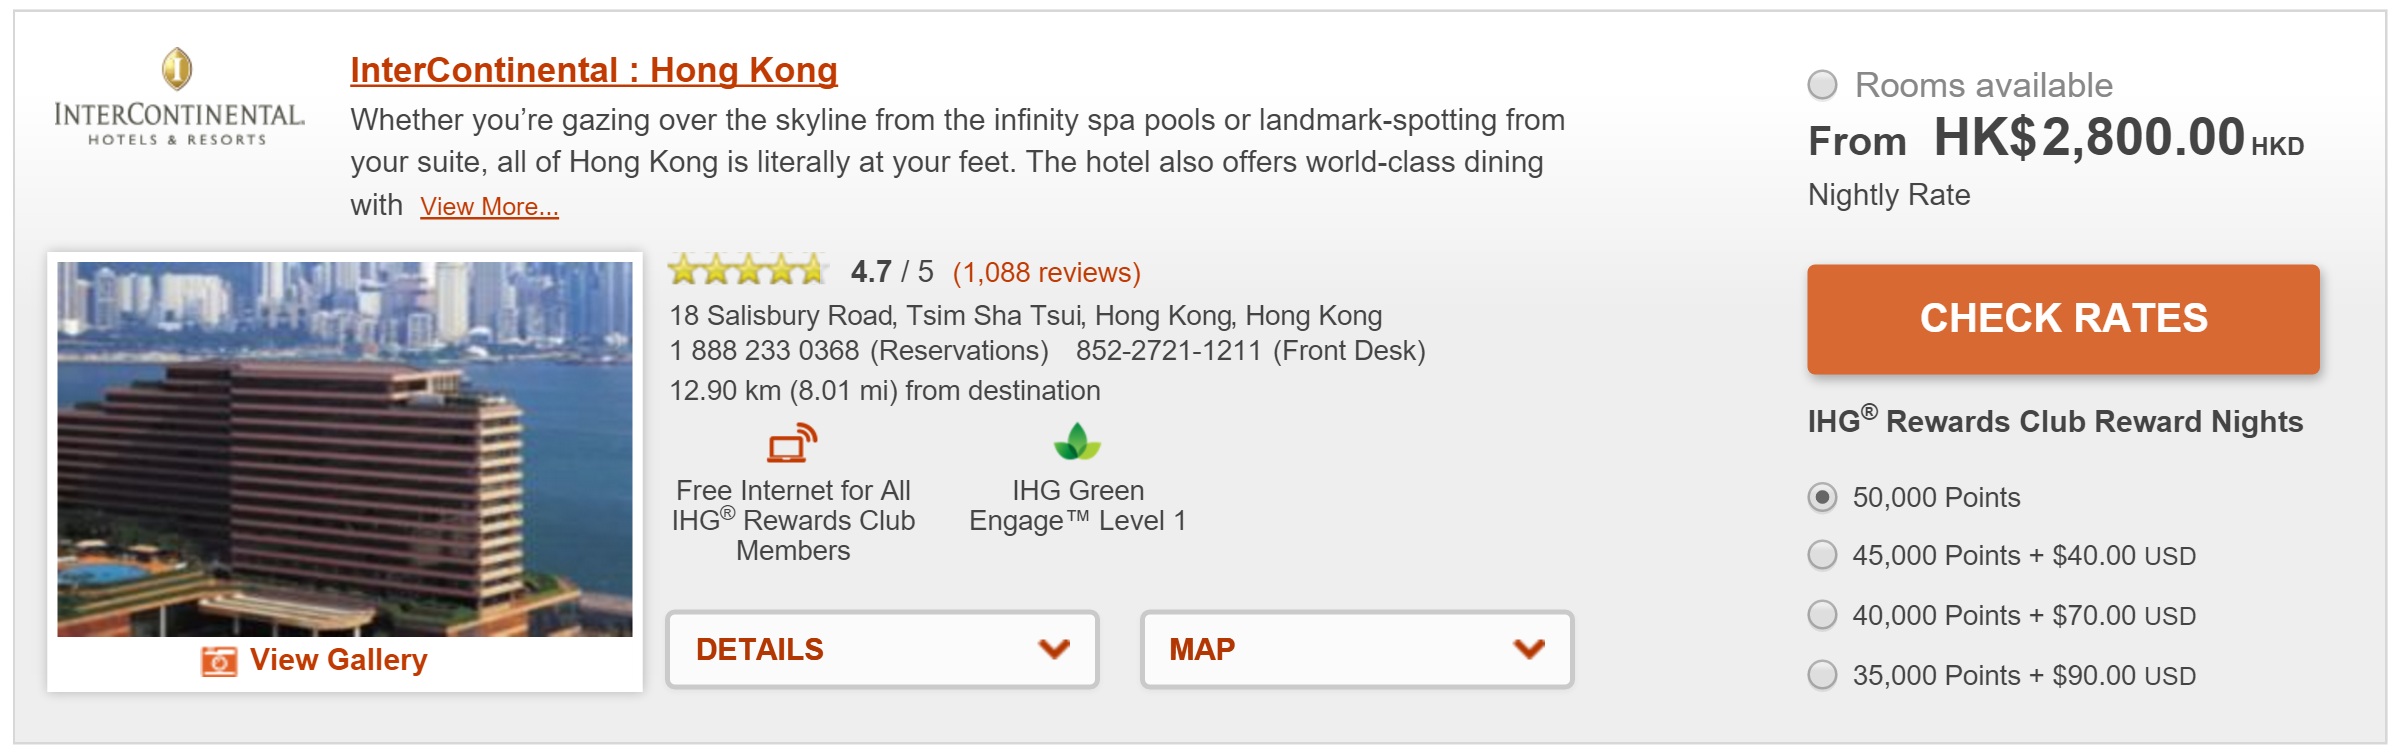 ihg-new-c-plus-p-option-ic-hong-kong